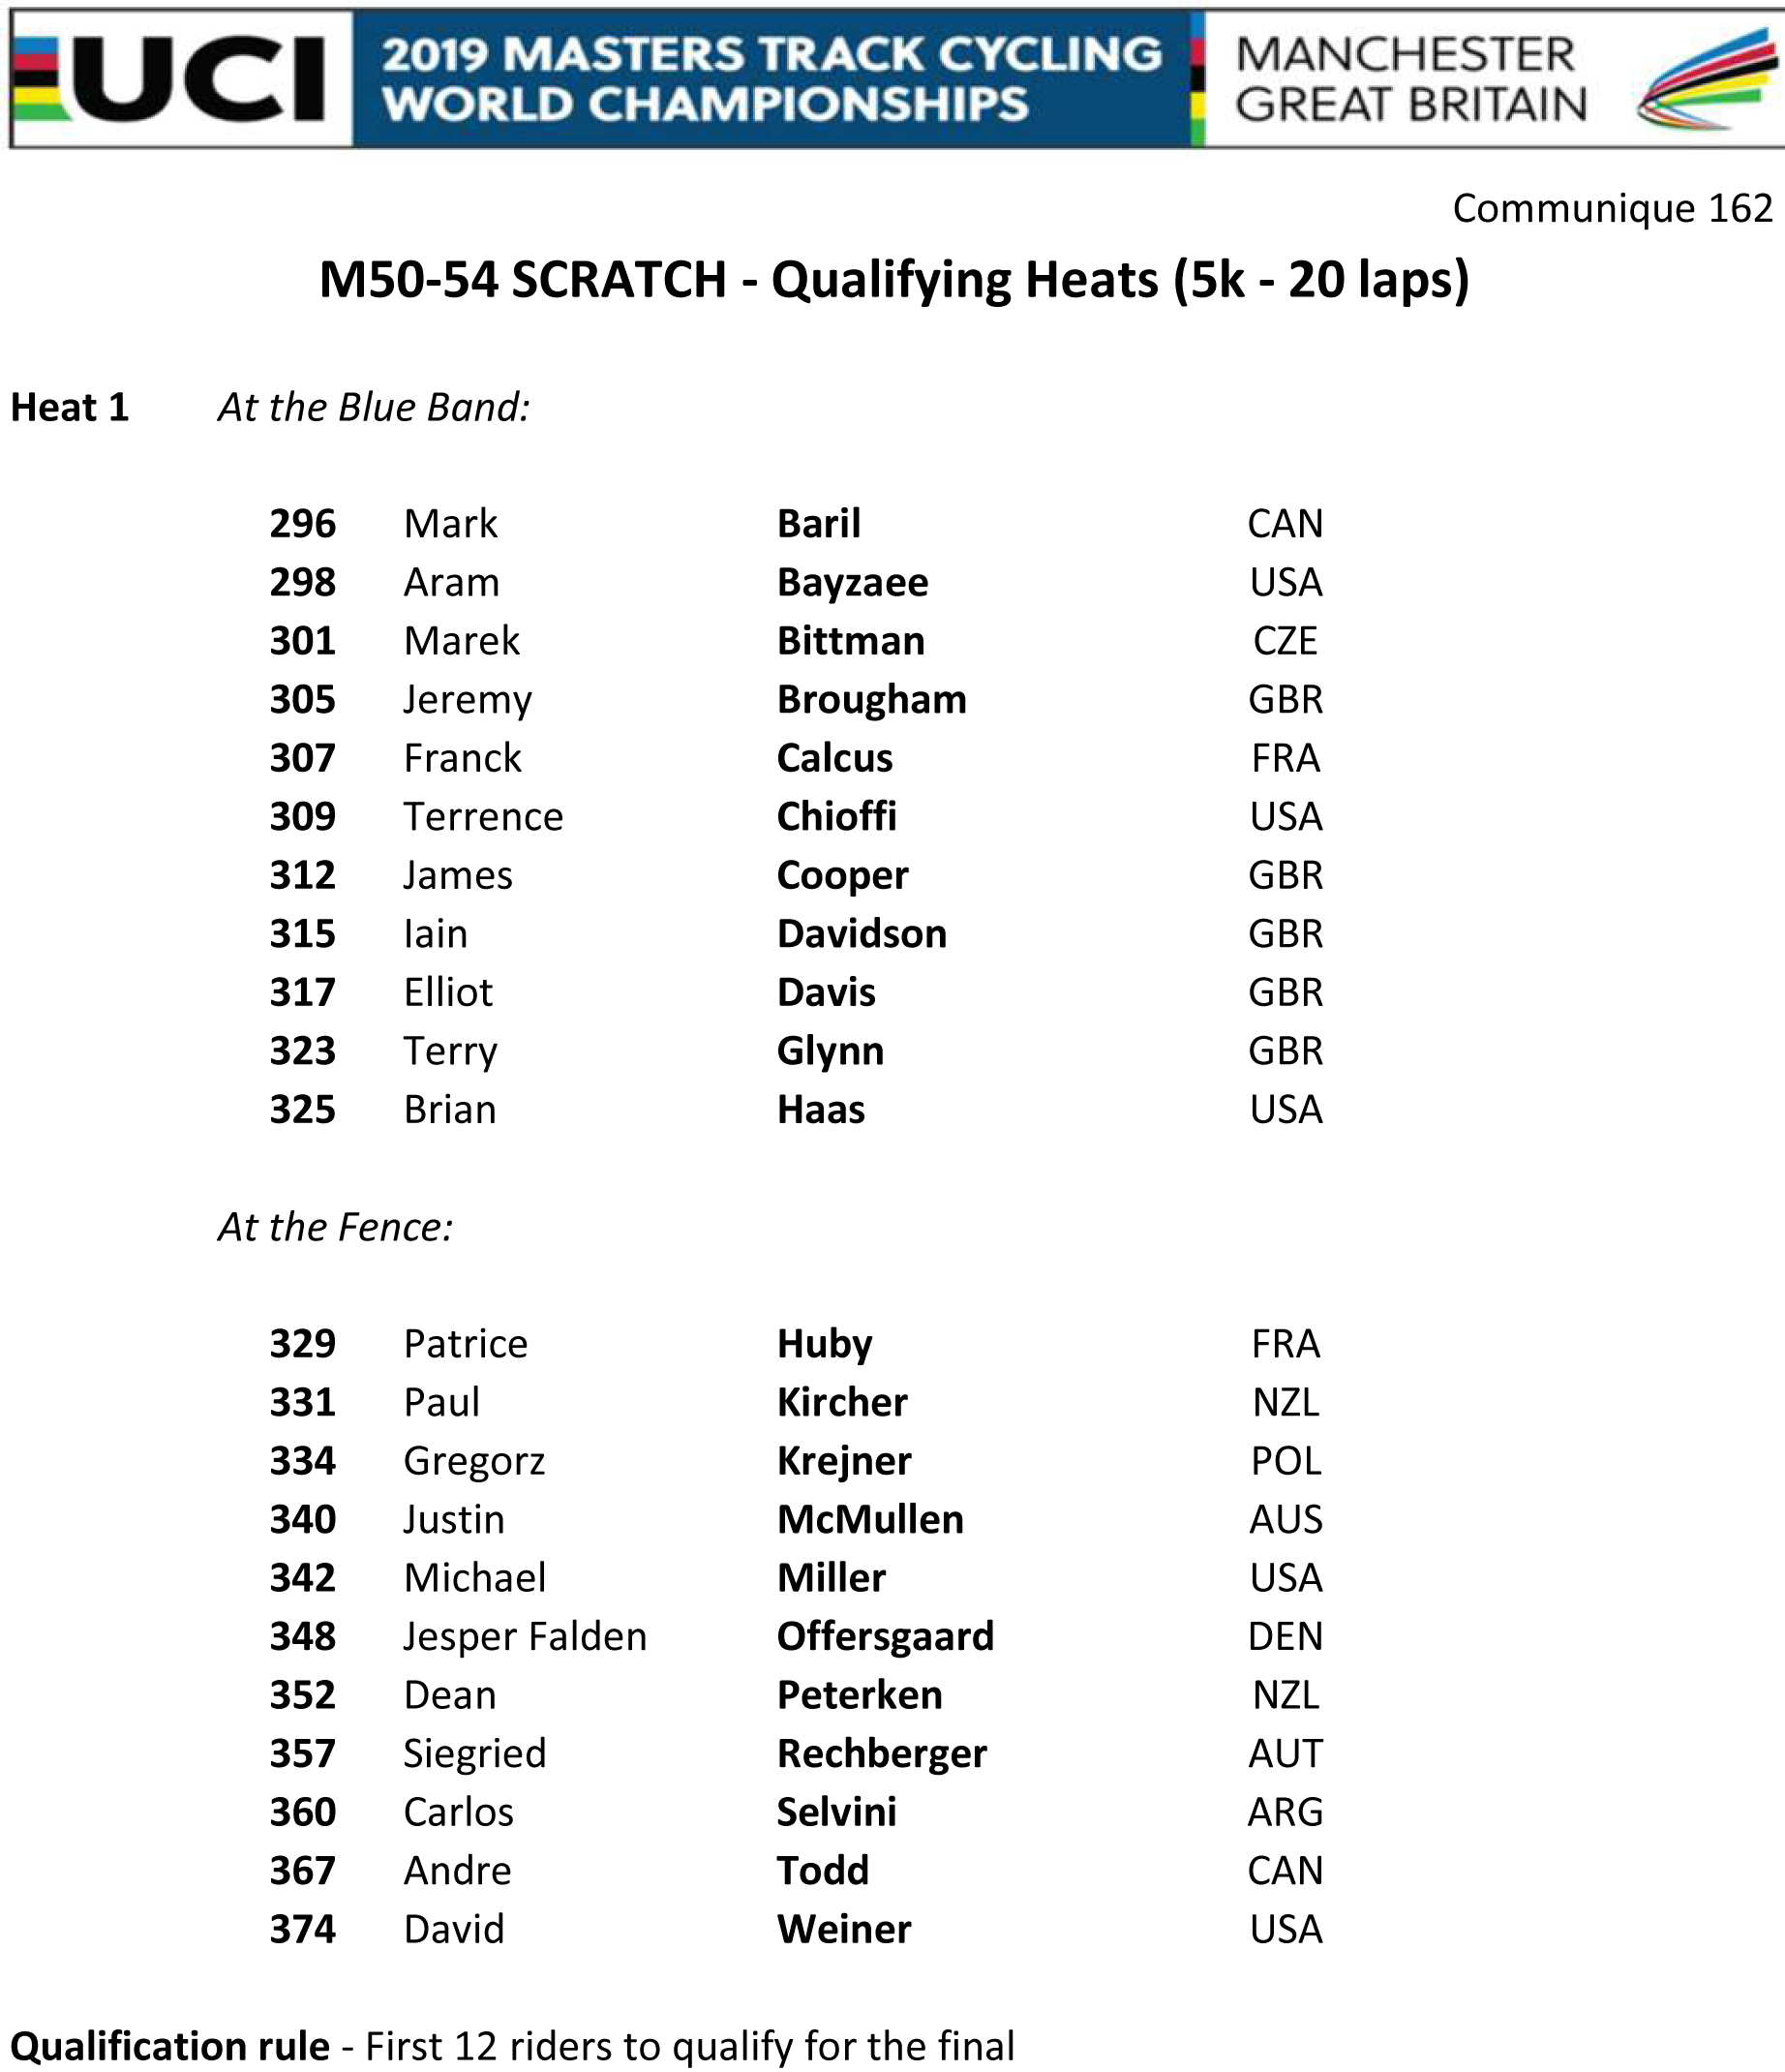 M5054 SCRATCH QUALIFYING HEAT 1